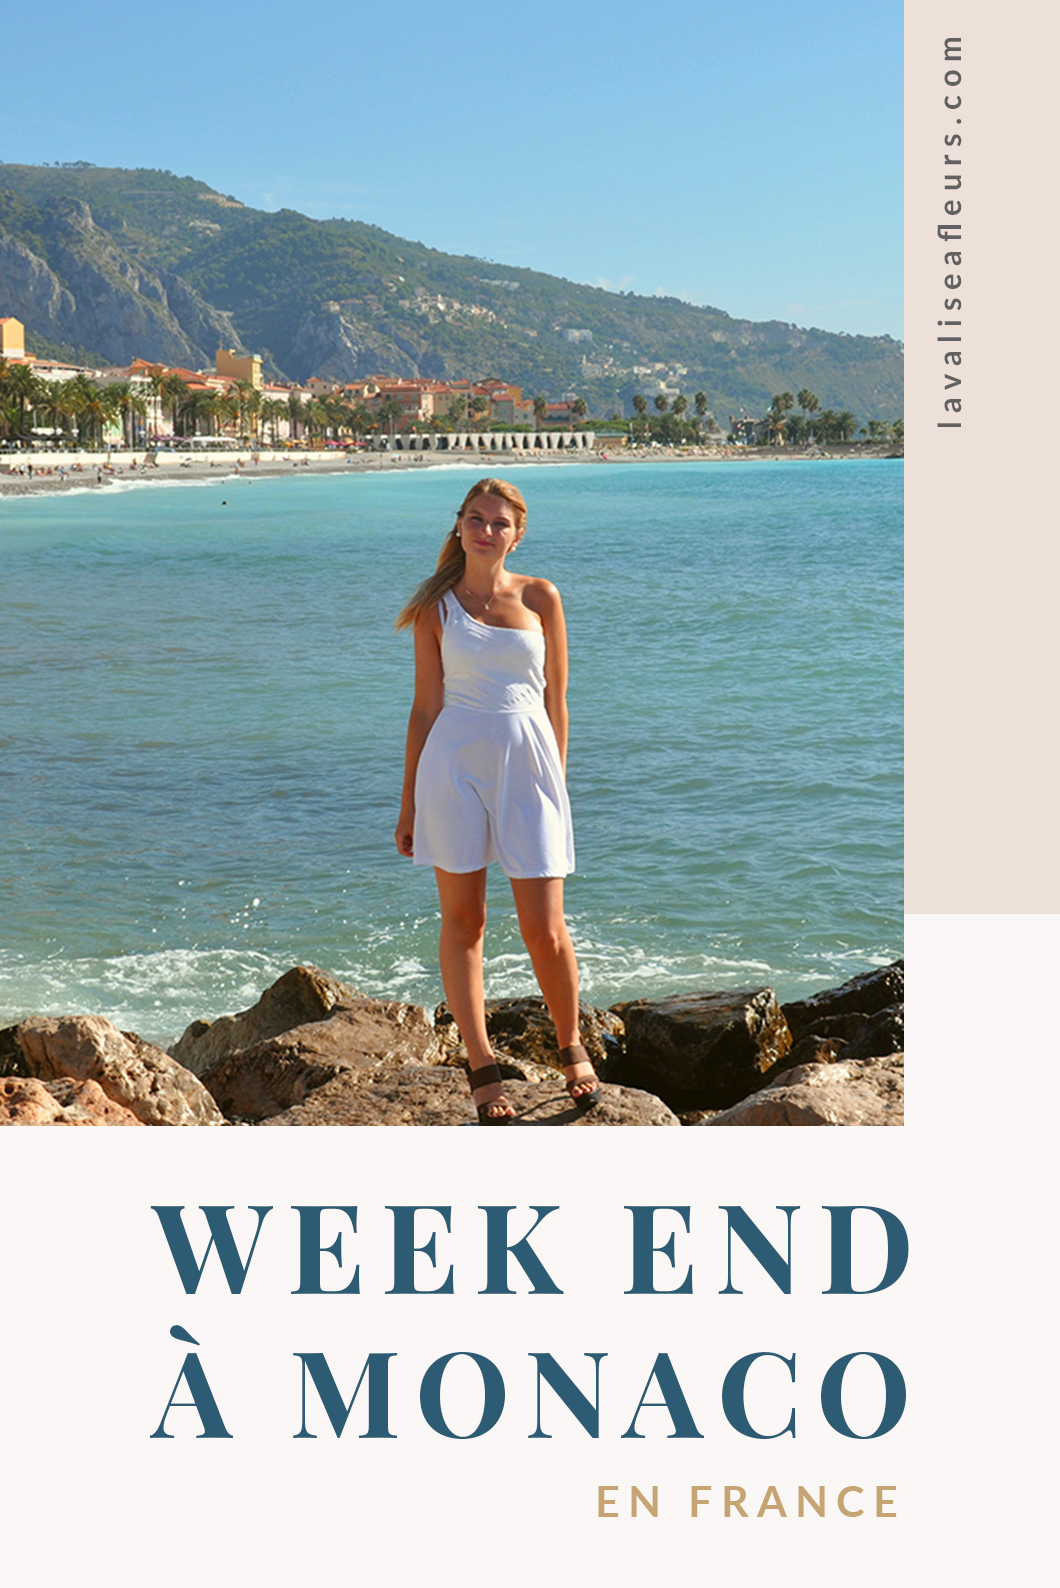 Week end à Monaco, le guide